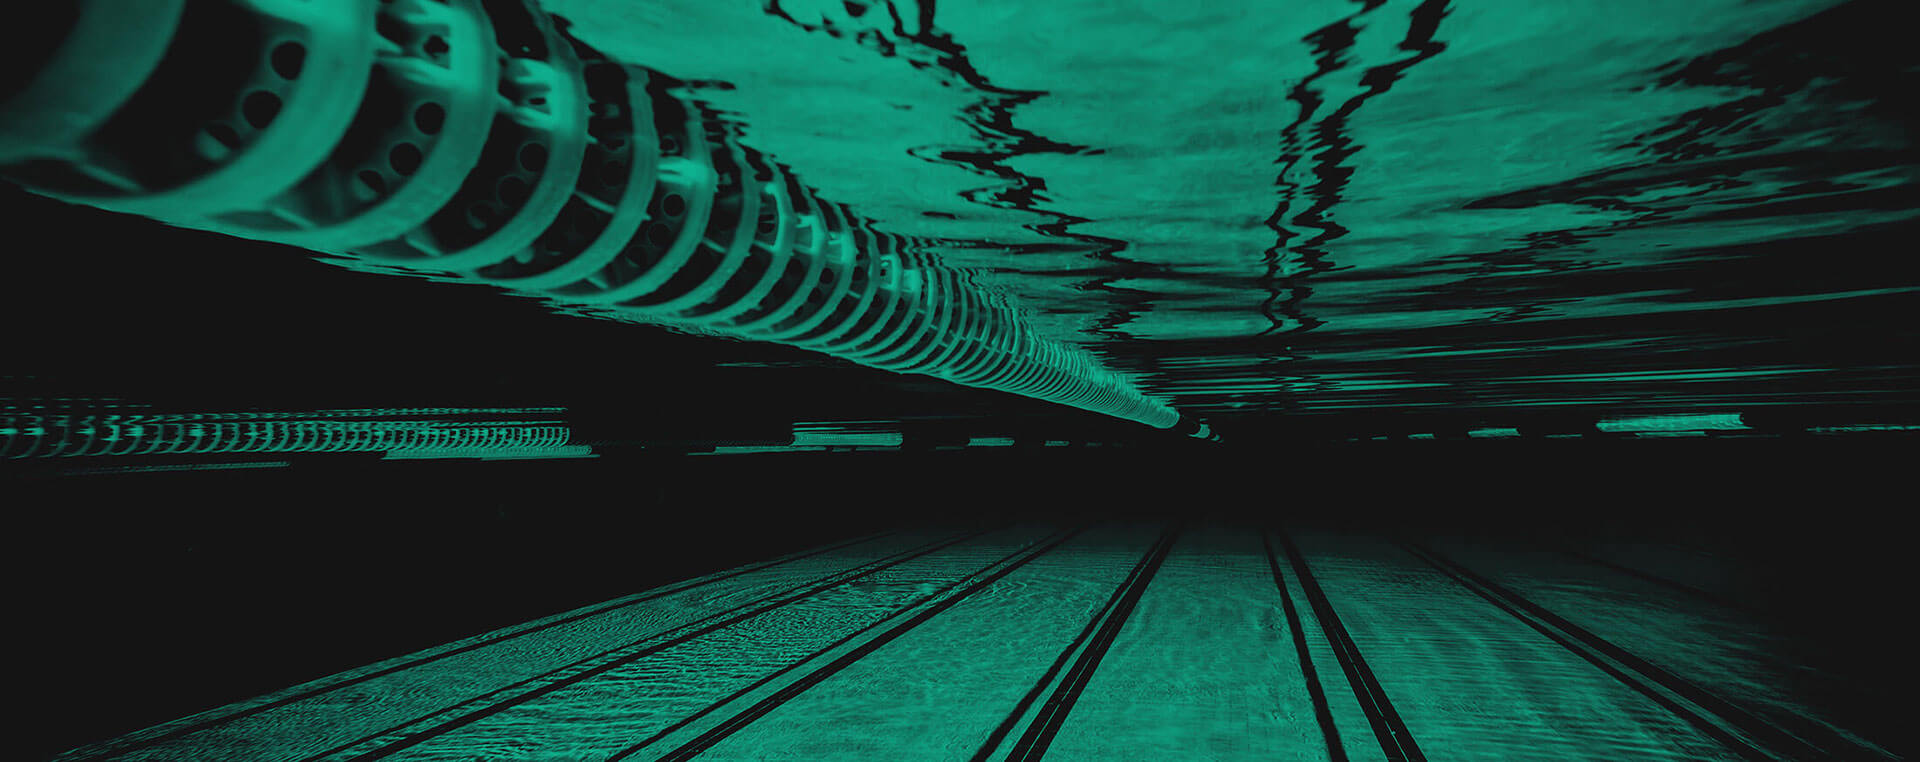 Green and black background image with a shot of the swimming pool underwater